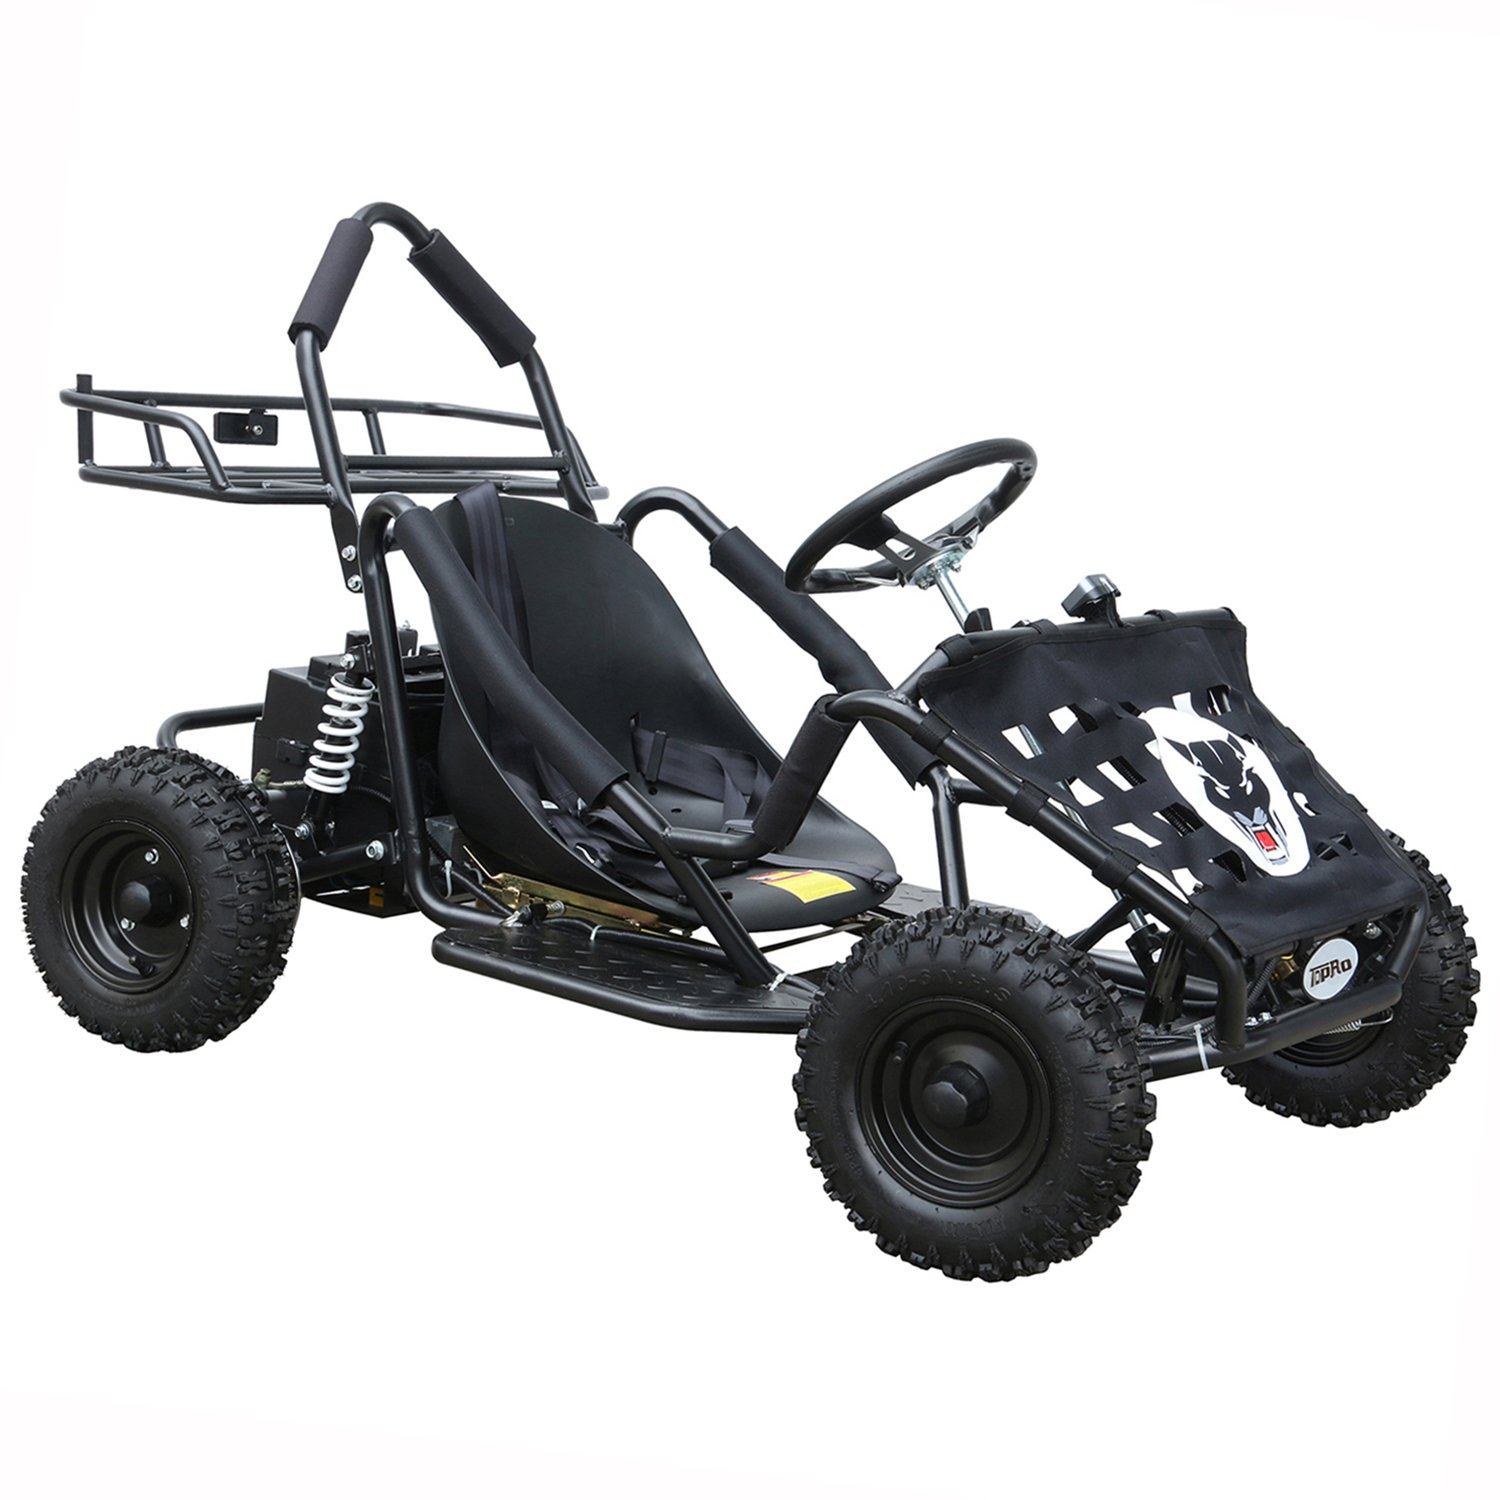 JCMOTO Electric Go Karts For Kids 4 Four Wheelers Off Road Tire 48v 1800w Black (Upgraded versions) by JCMOTO (Image #1)